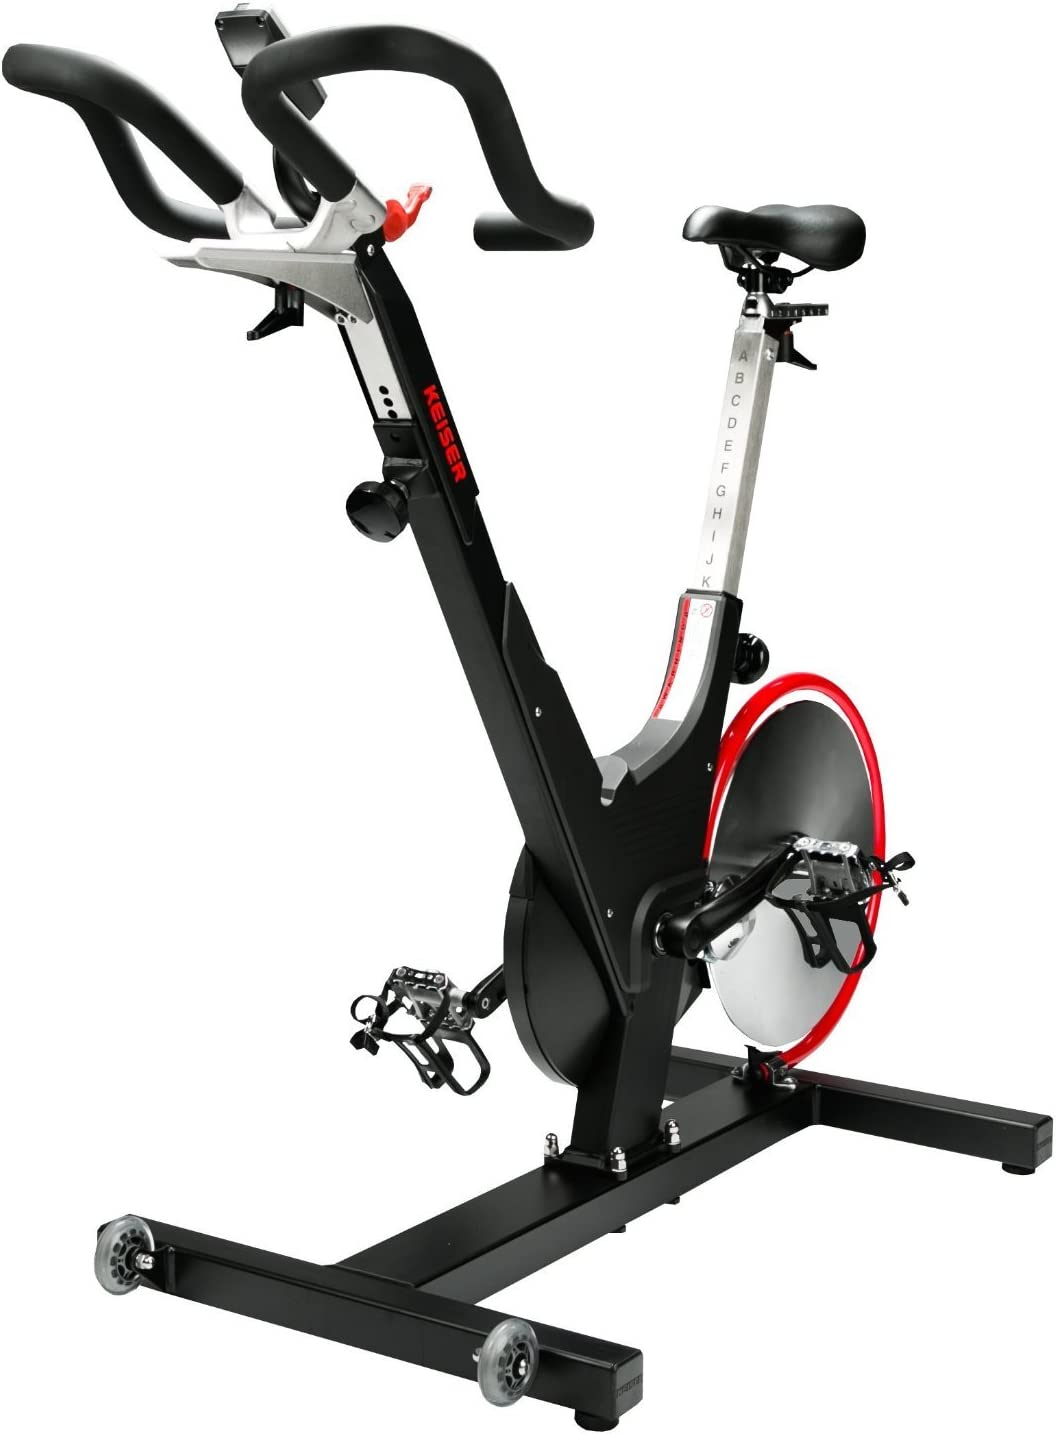 5 Best Exercise Bike For Tall Person (2020 Reviews) 4